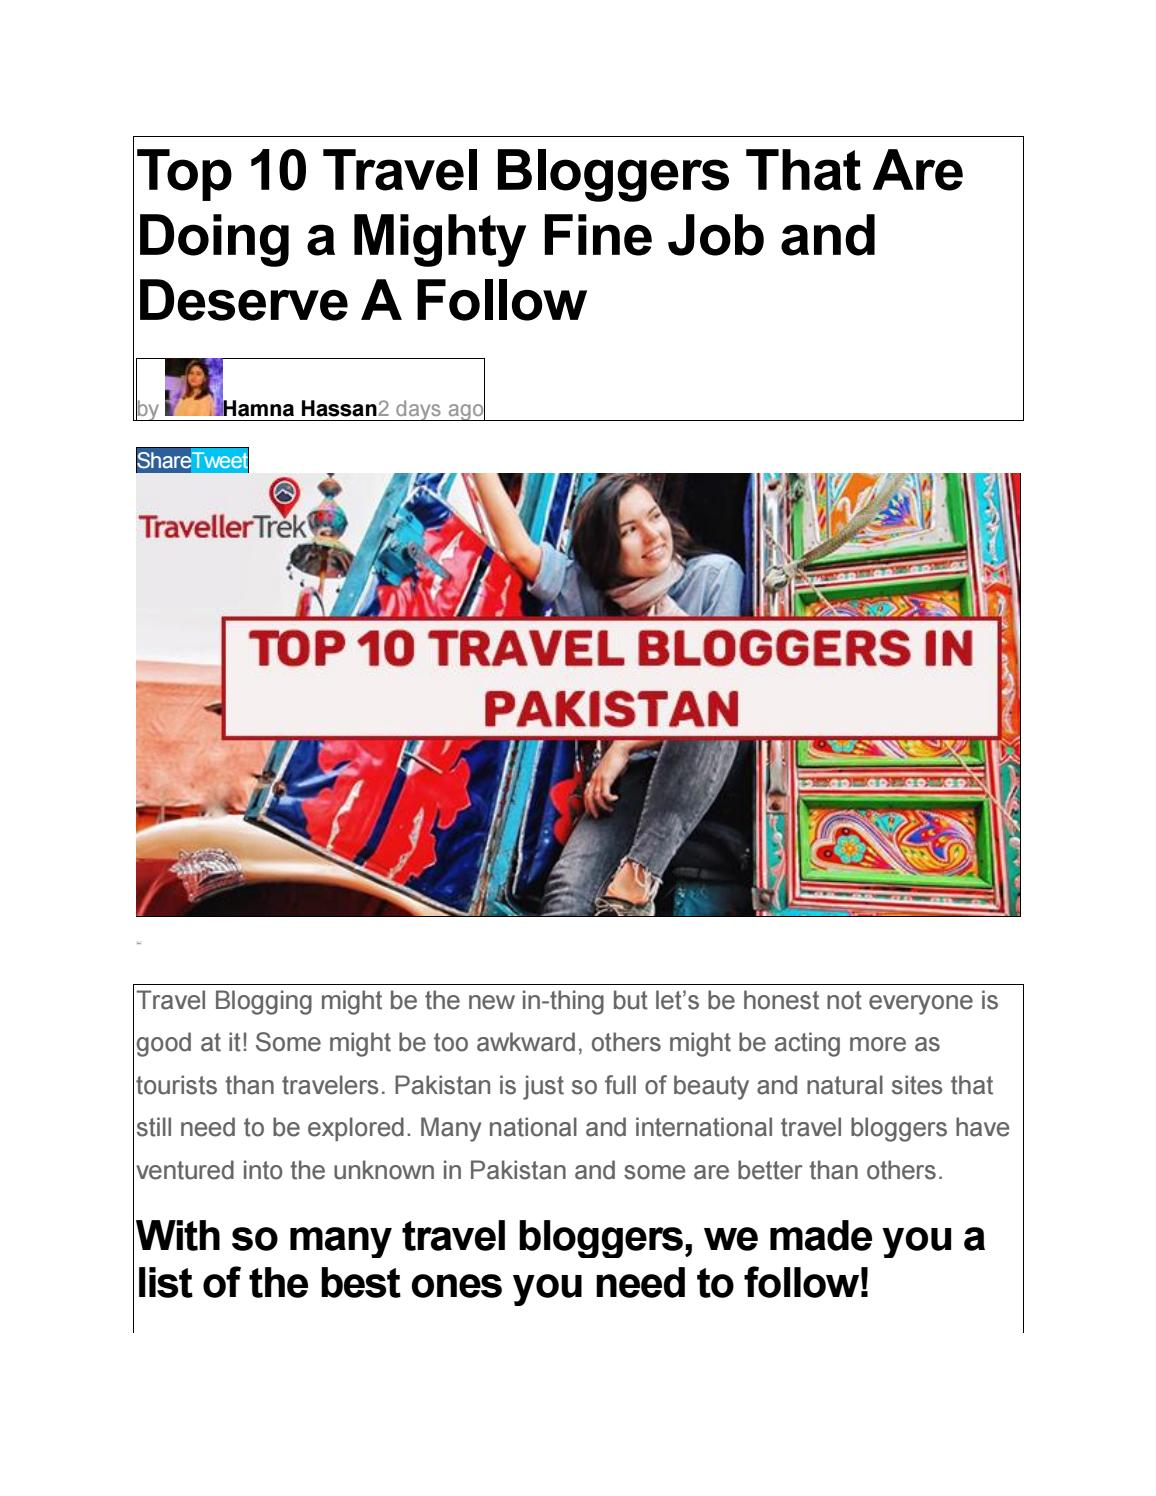 Top 10 Travel Bloggers That Are Doing a Mighty Fine Job and